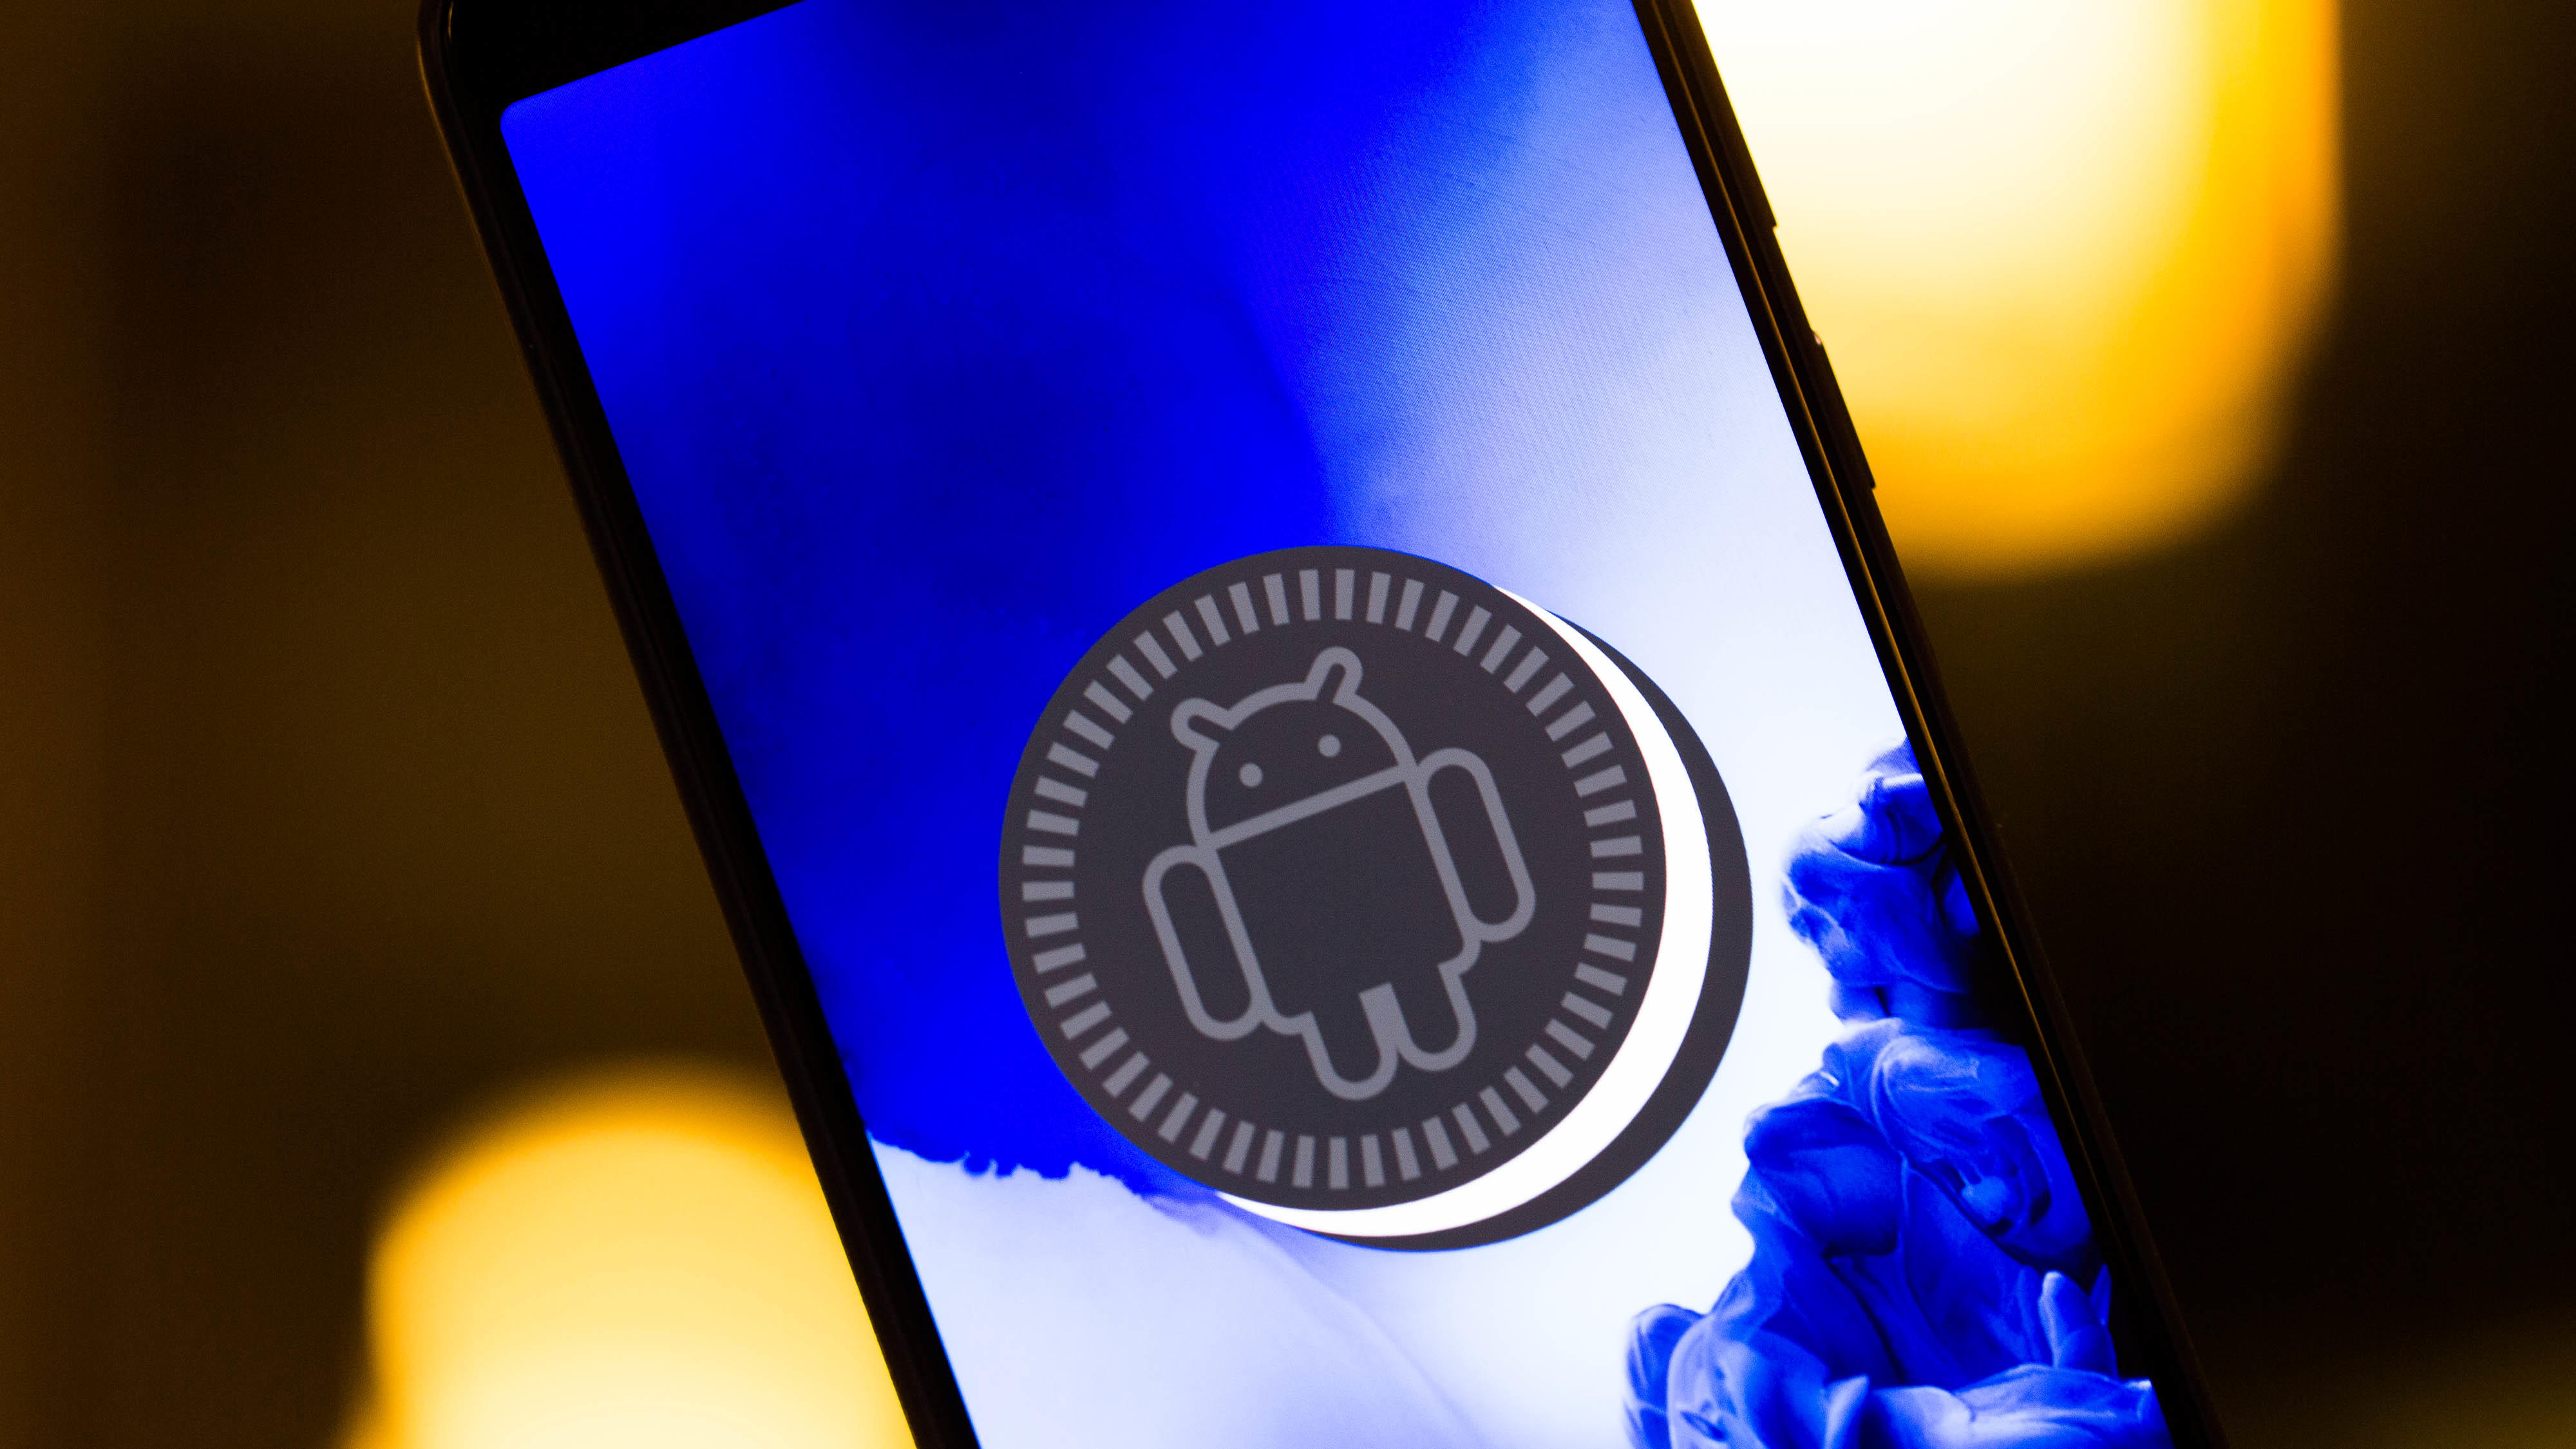 alcatel-ces-2019-1x-android-operating-system-1